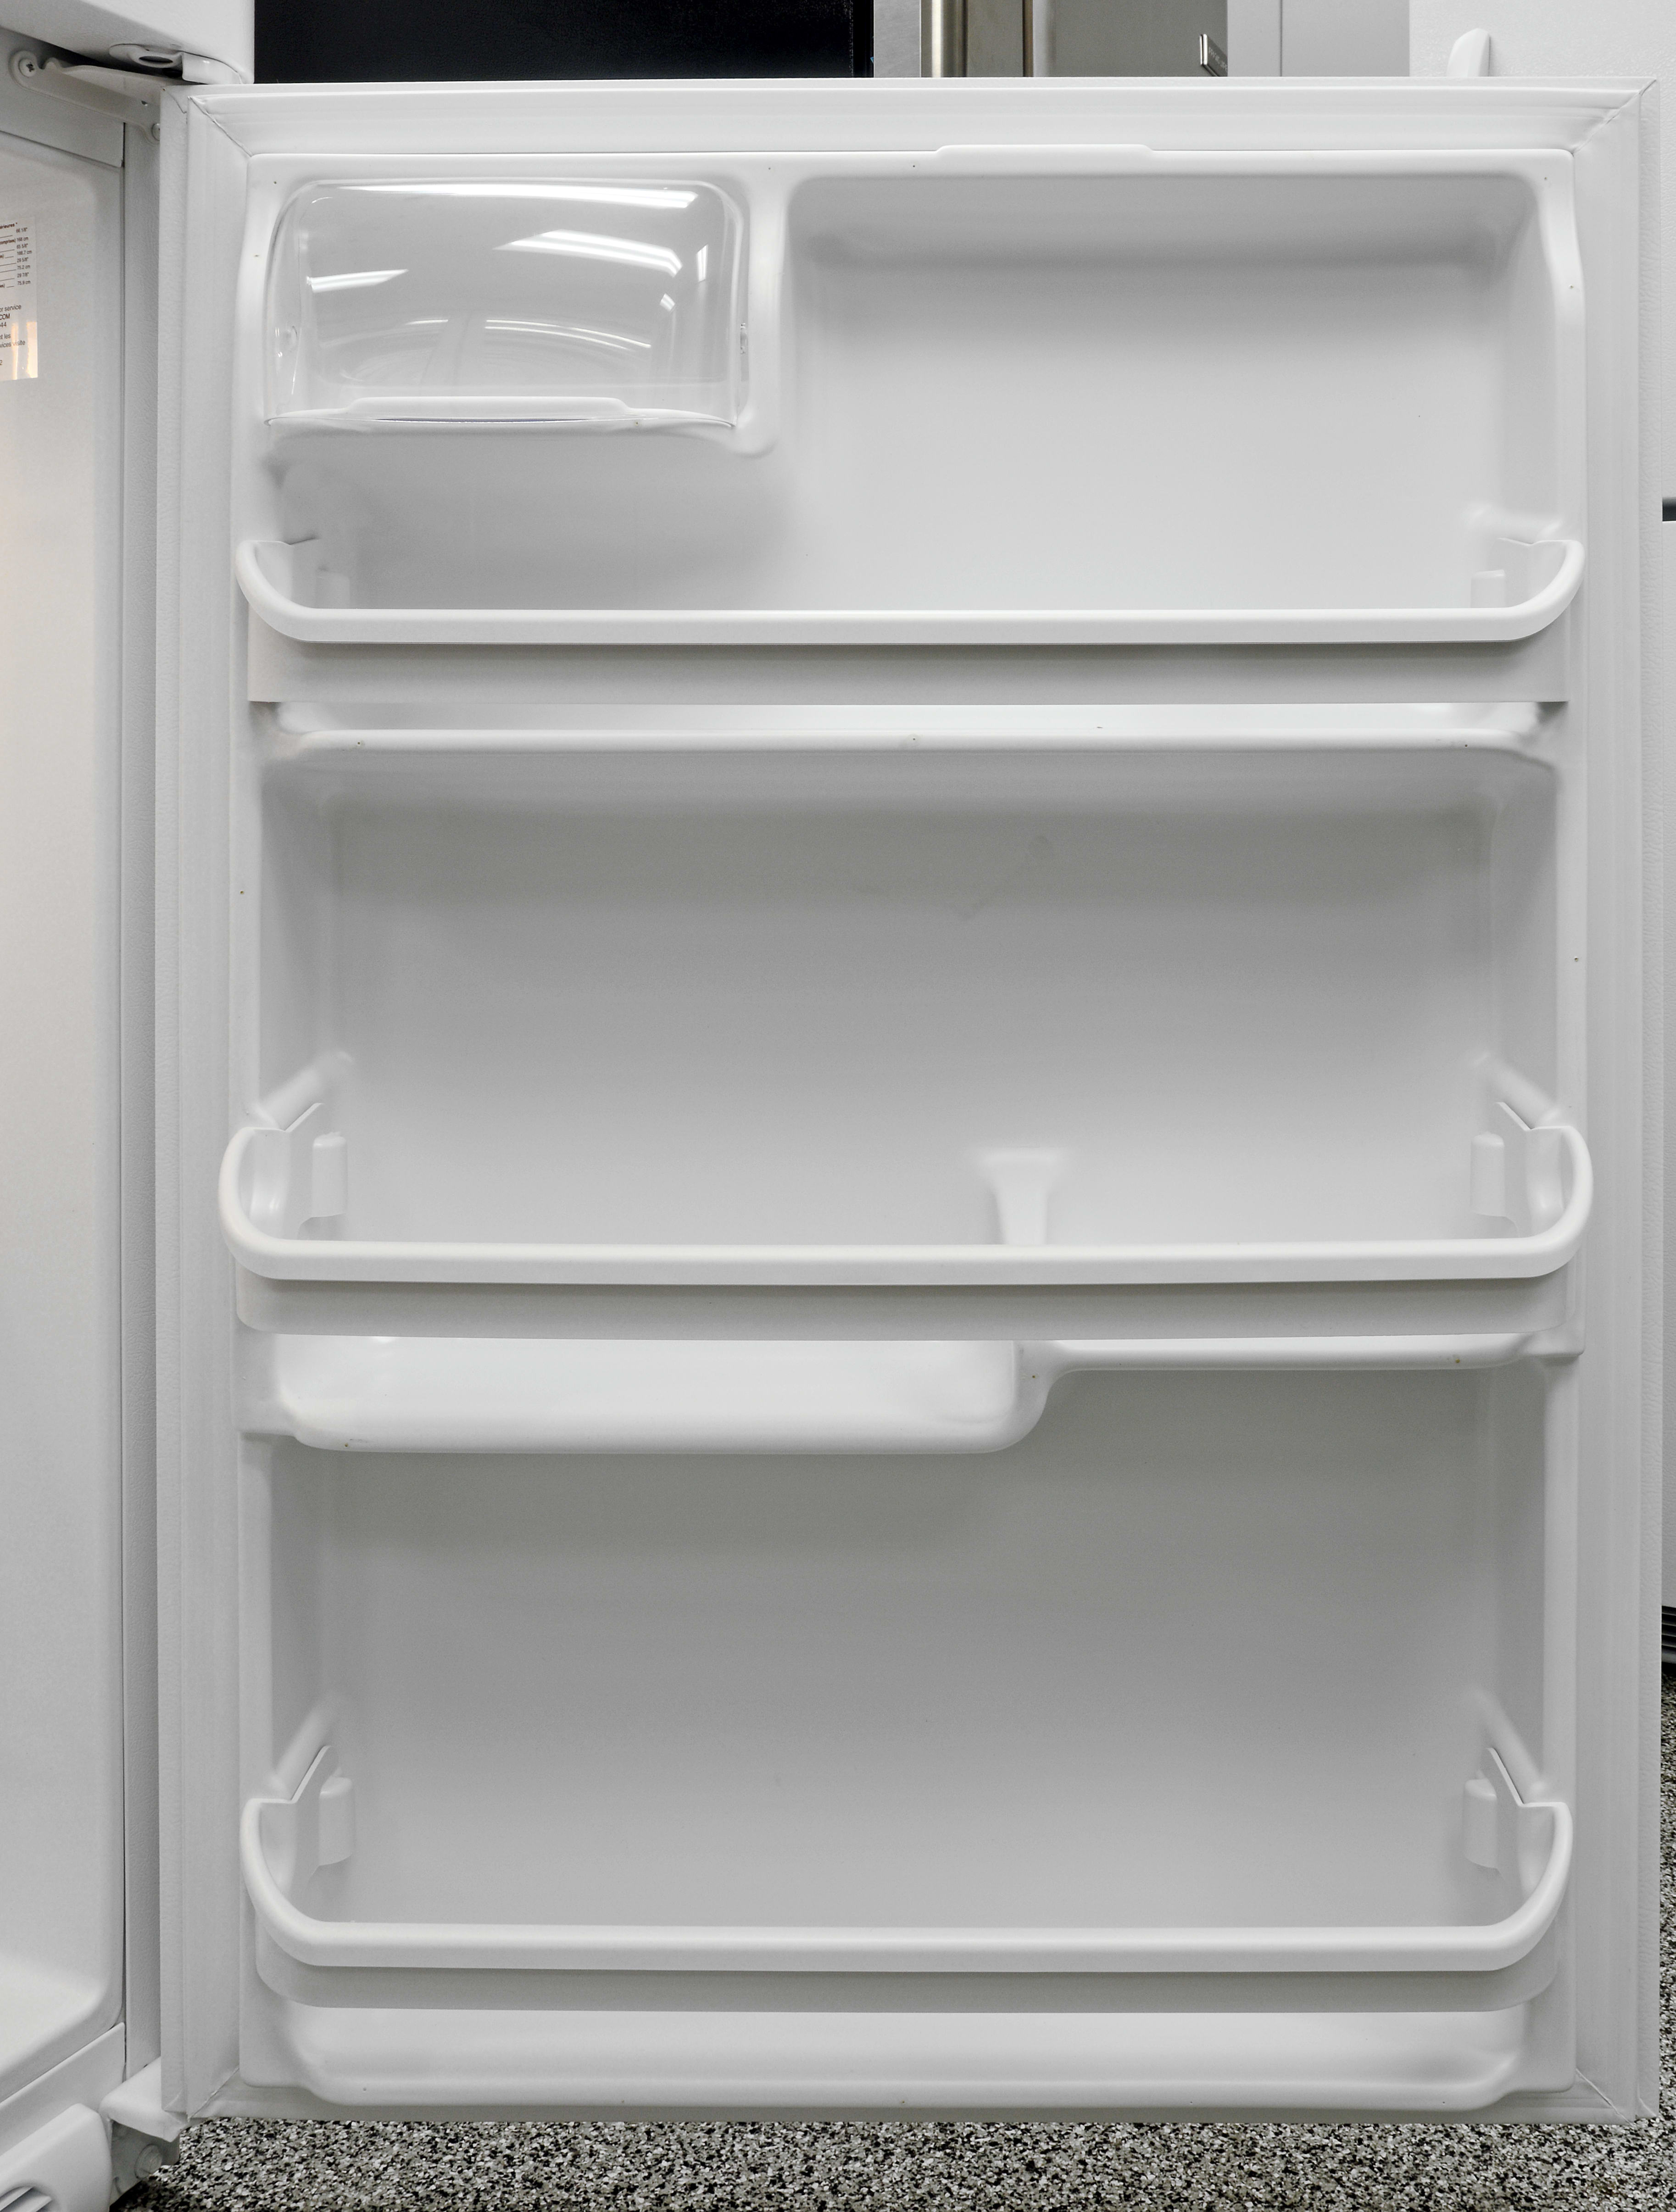 You can't move any of the Frigidaire FFTR1814QW's door shelves, but at least they offer storage options in varying heights.